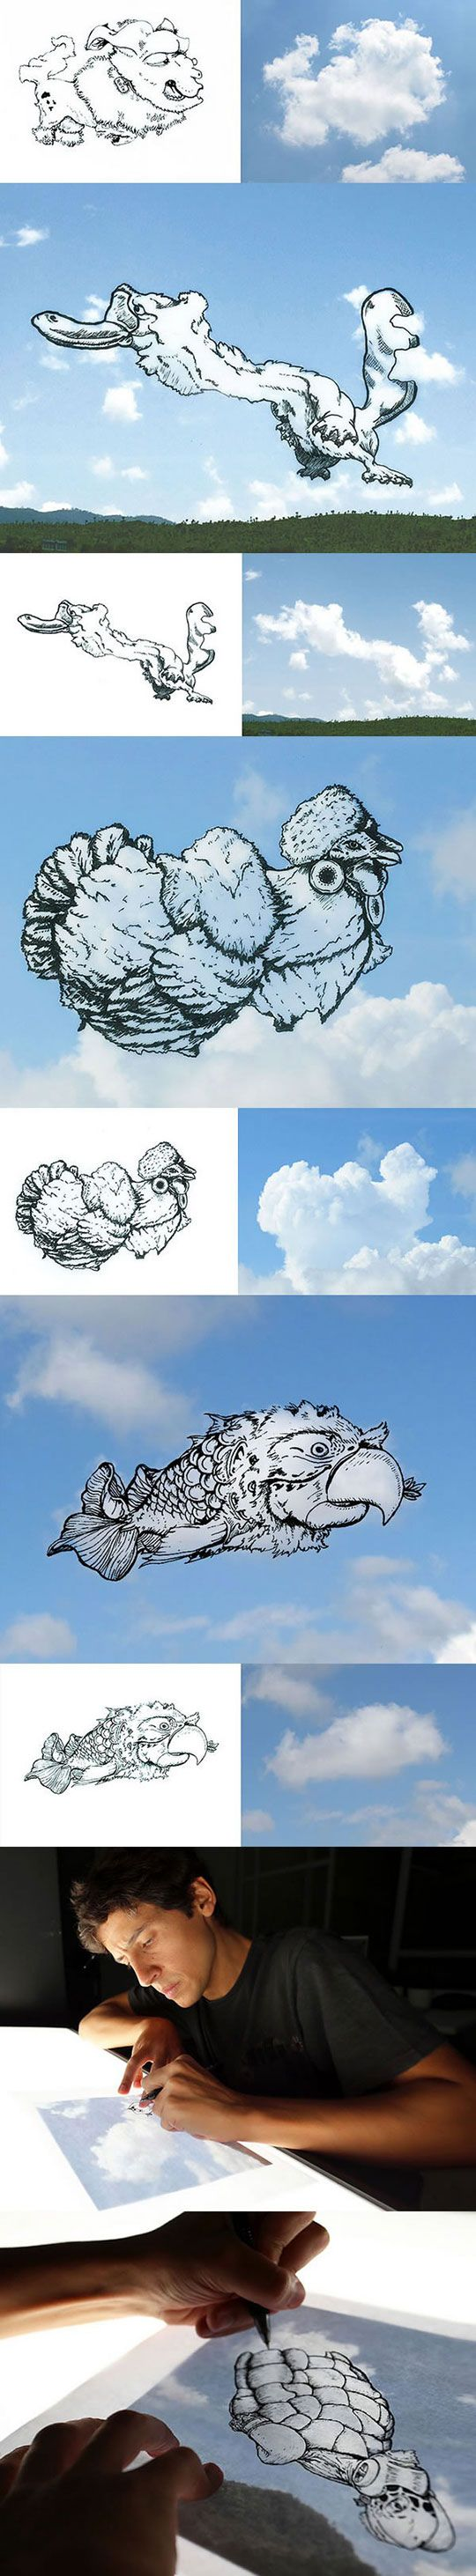 Artist Turns Clouds Into Illustrations ~ Love This Guy, So Awesome!